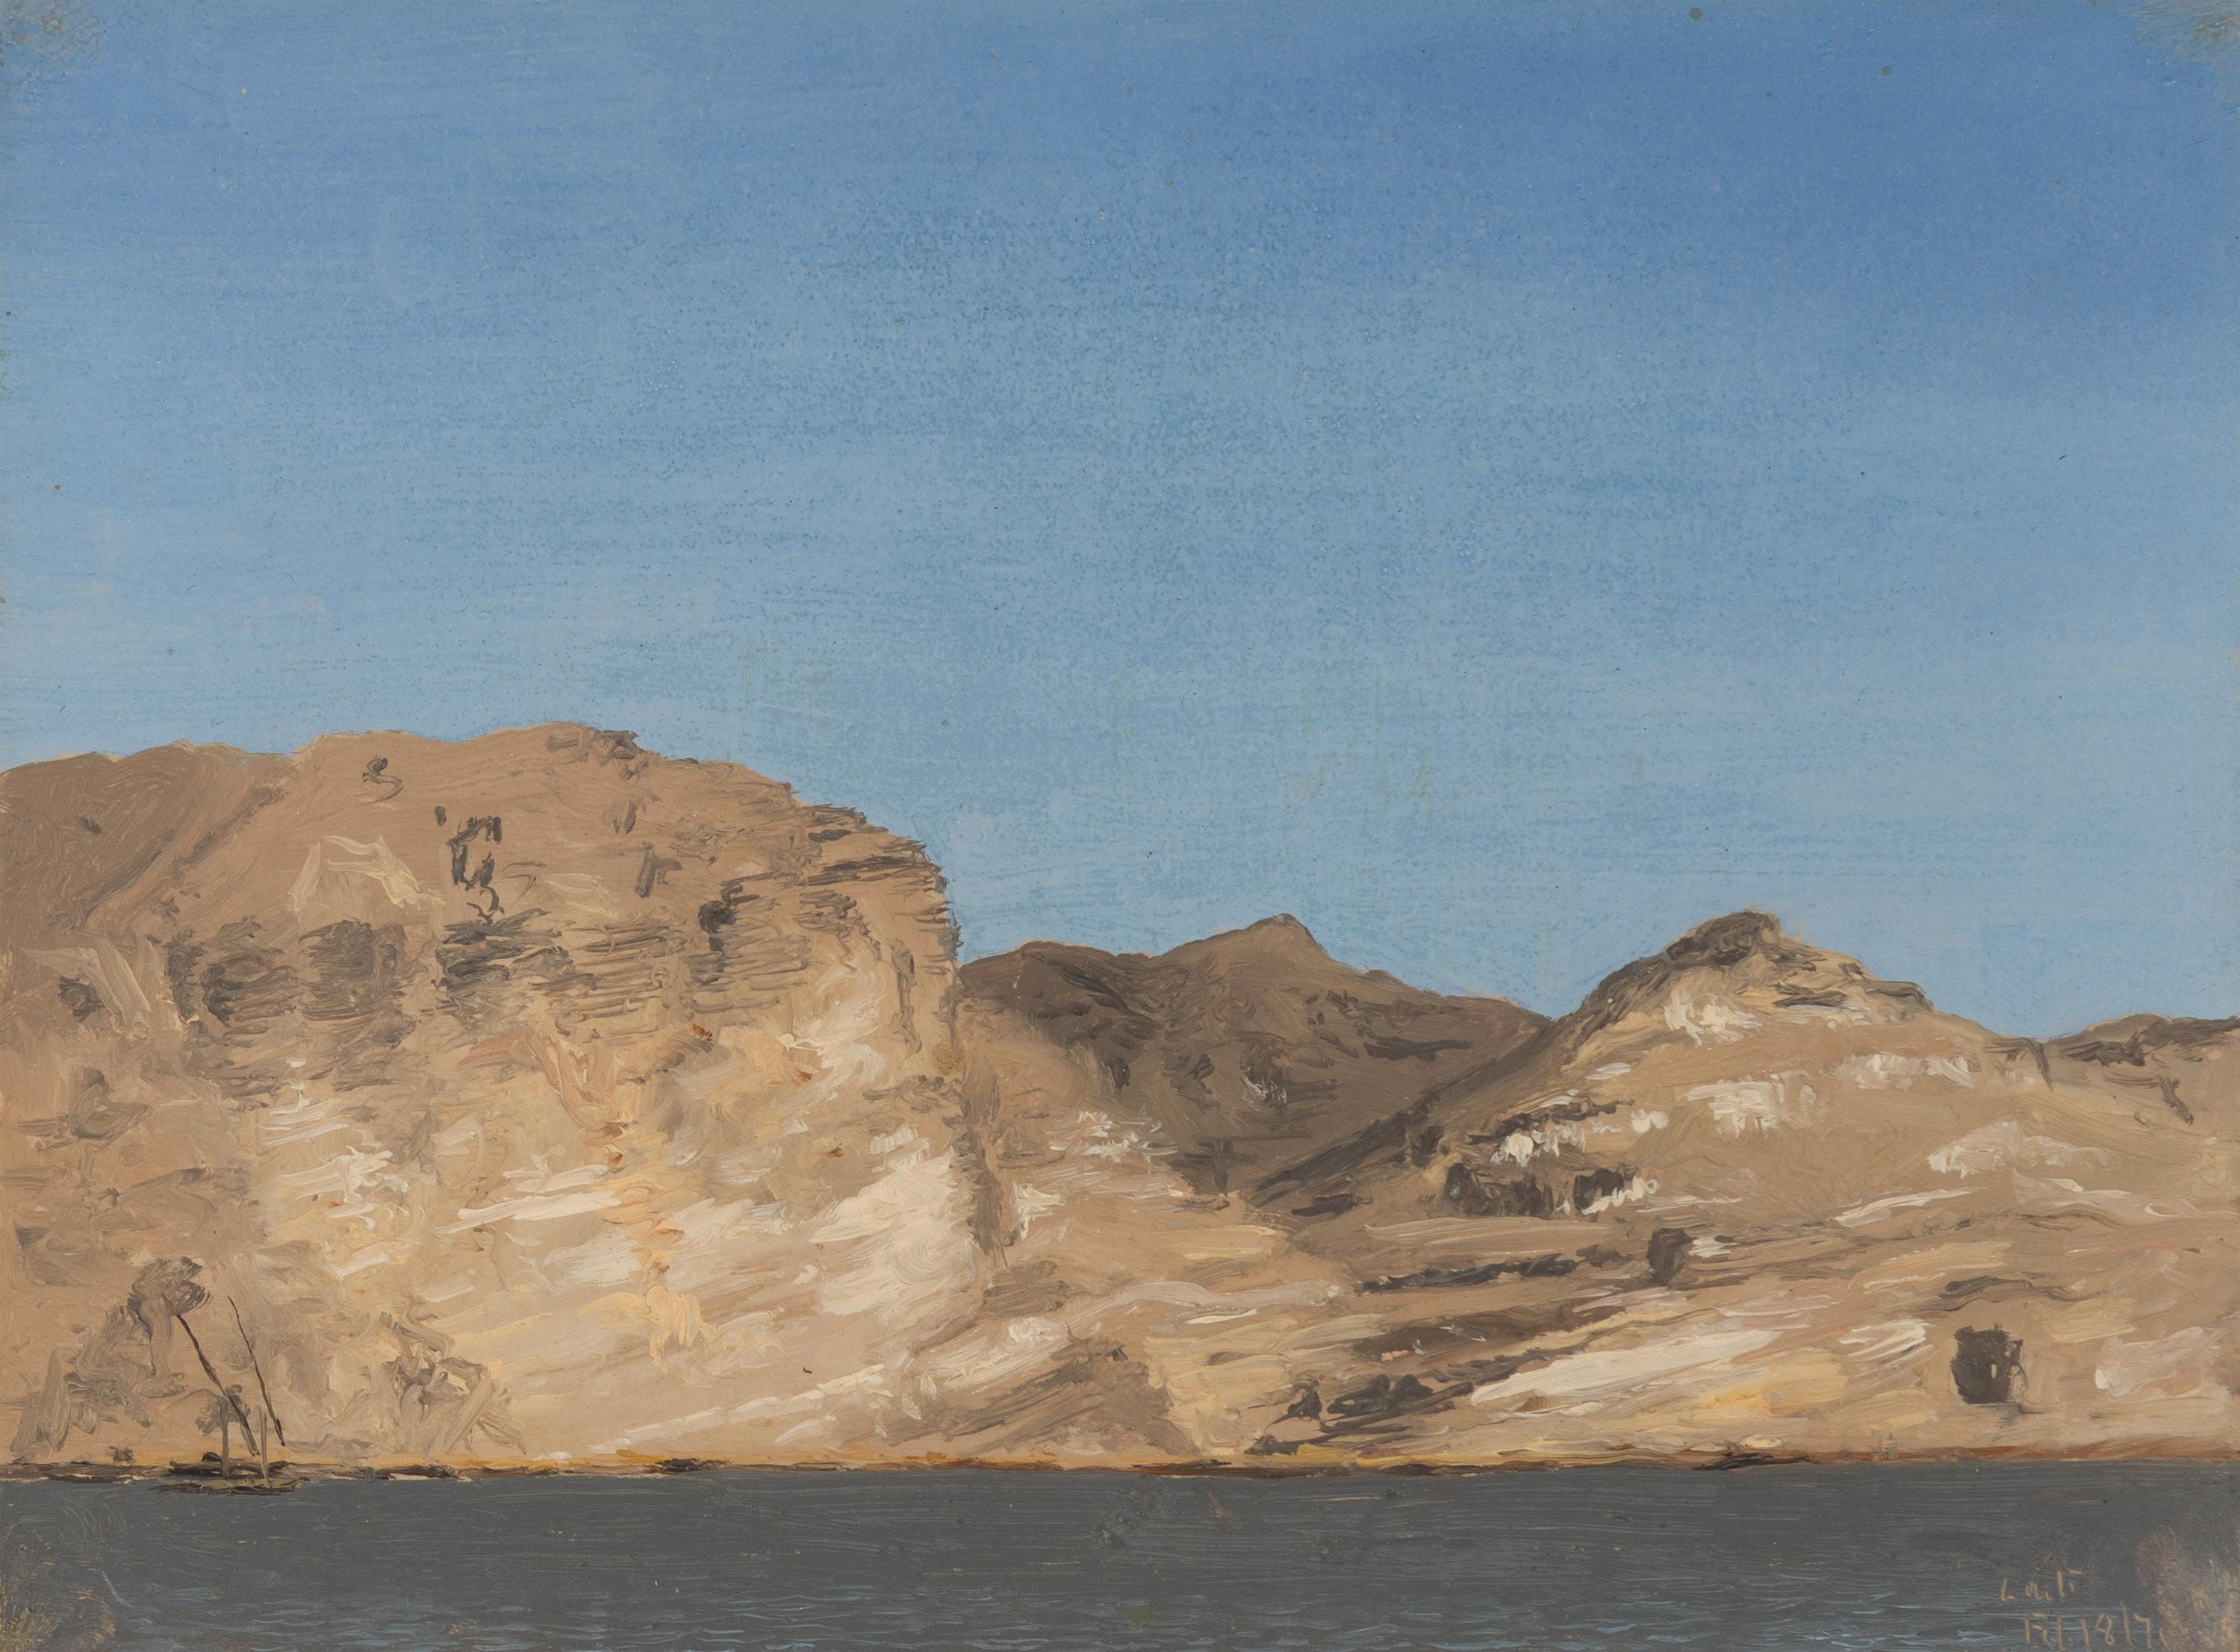 """Lockwood de Forest, (1850-1932 Santa Barbara, CA), """"Nile and Cliffs,"""" 1876, Oil on paper laid to board, 7"""" H x 9.25"""" W"""